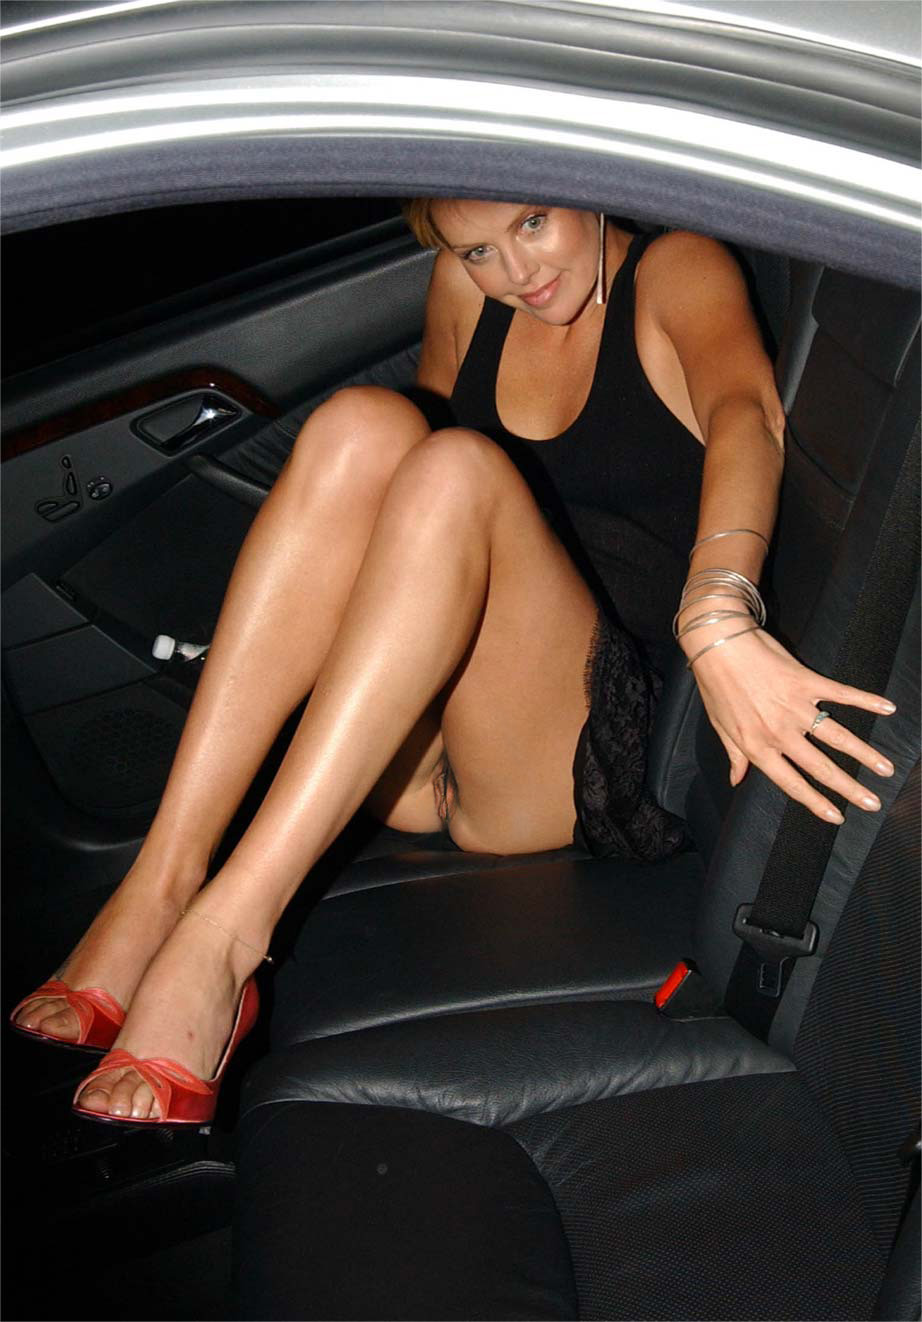 Collection Bare Pussy Upskirts Pictures - Amateur Adult Gallery